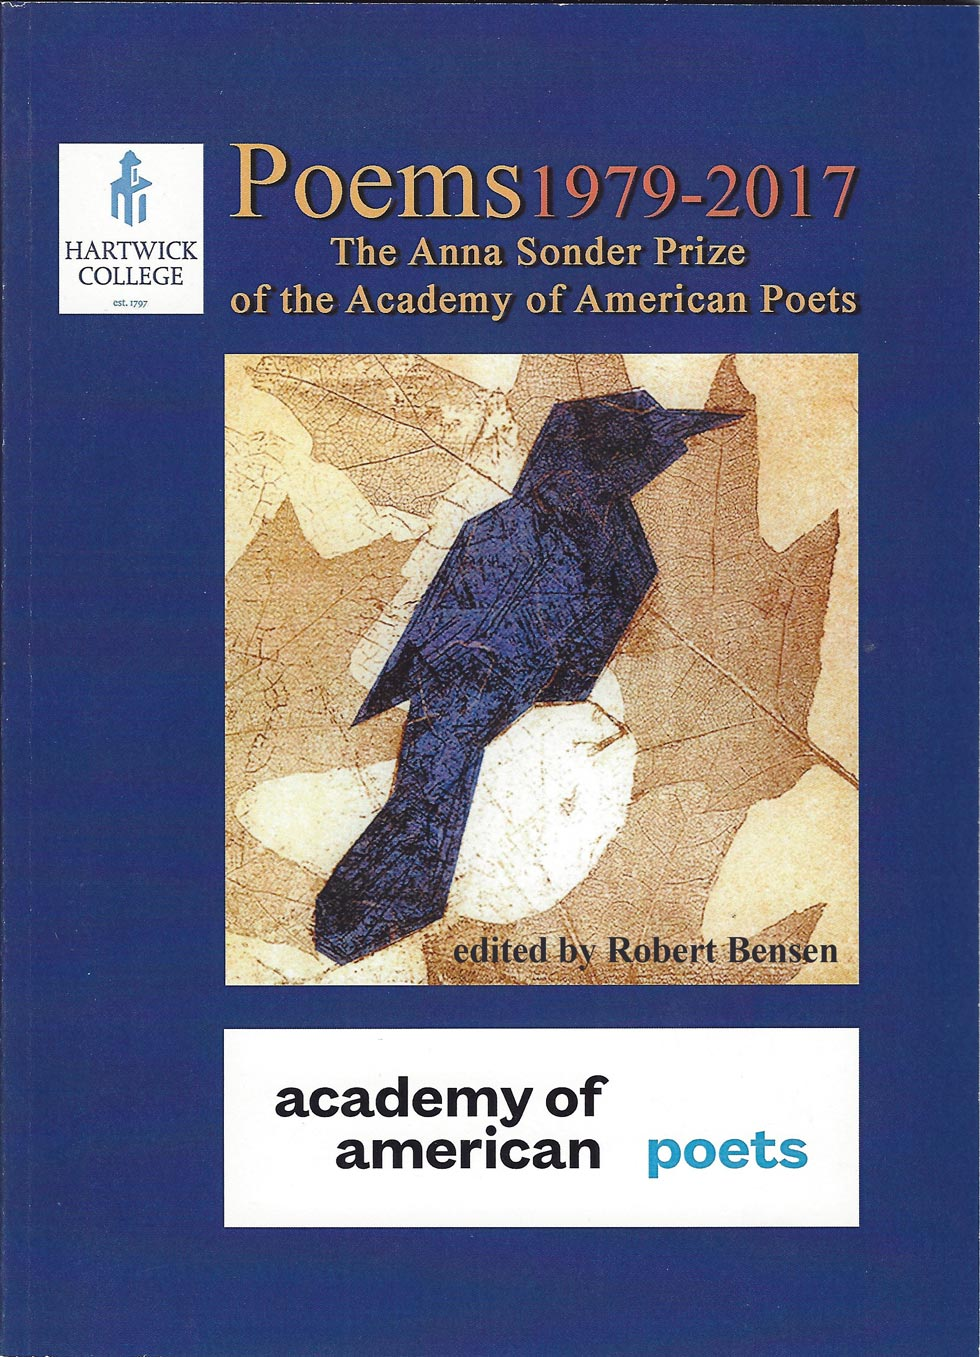 The Anna Sonder Prize of the Academy of American Poets book cover